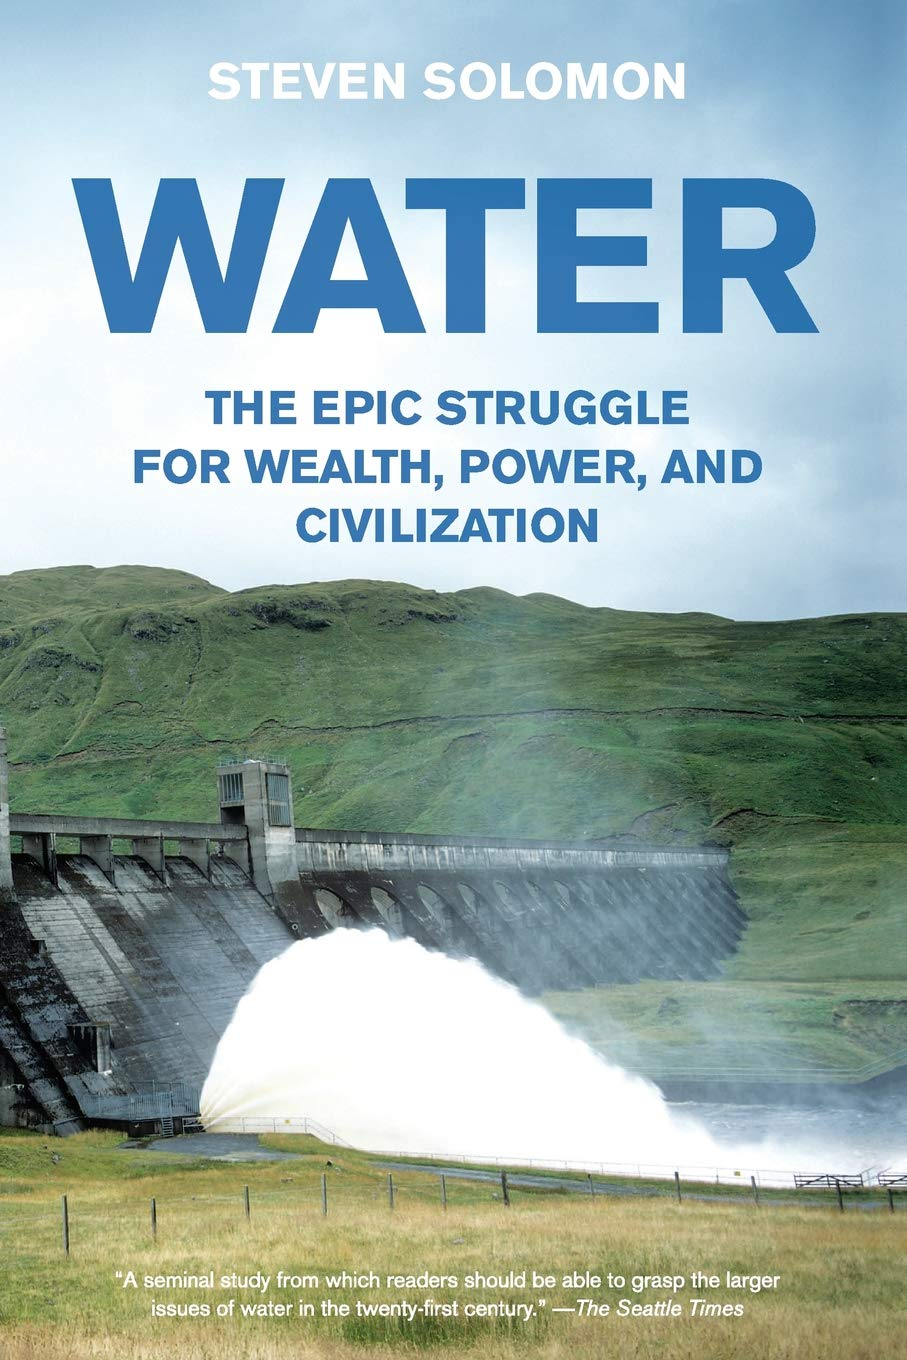 water : the epic struggle of wealth, power, and civilization - By Steven SolomonFar more than oil, the control of water wealth throughout history has been pivotal to the rise and fall of great powers, the achievements of civilization, the transformations of society's vital habitats, and the quality of ordinary daily lives. Today, freshwater scarcity is one of the twenty-first century's decisive, looming challenges, driving new political, economic, and environmental realities across the globe.In Water, Steven Solomon offers the first-ever narrative portrait of the power struggles, personalities, and breakthroughs that have shaped humanity from antiquity's earliest civilizations through the steam-powered Industrial Revolution and America's century. Meticulously researched and masterfully written, Water is a groundbreaking account of man's most critical resource in shaping human destinies, from ancient times to our dawning age of water scarcity.